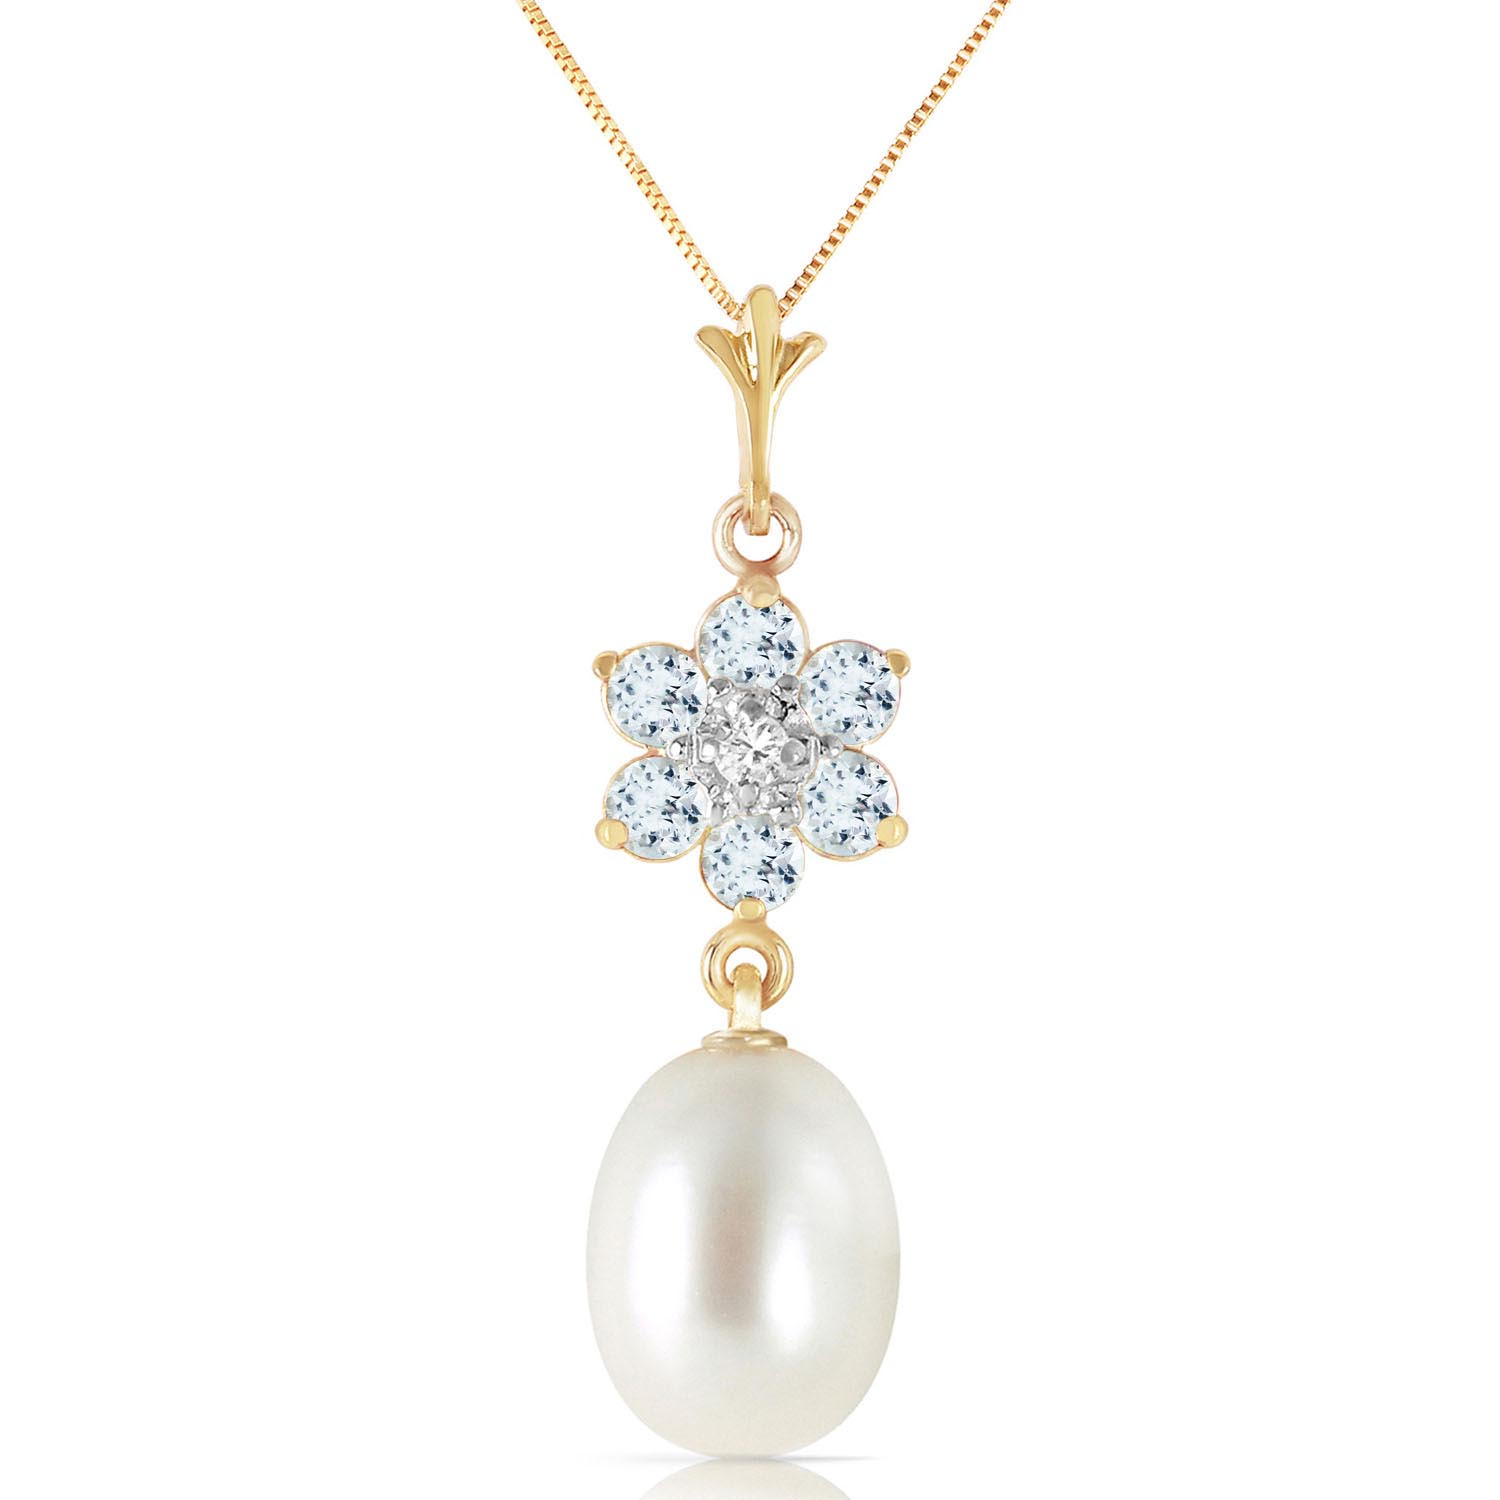 Bargain Pearl, Aquamarine and Diamond Daisy Pendant Necklace 4.5ctw in 9ct Gold Stockists